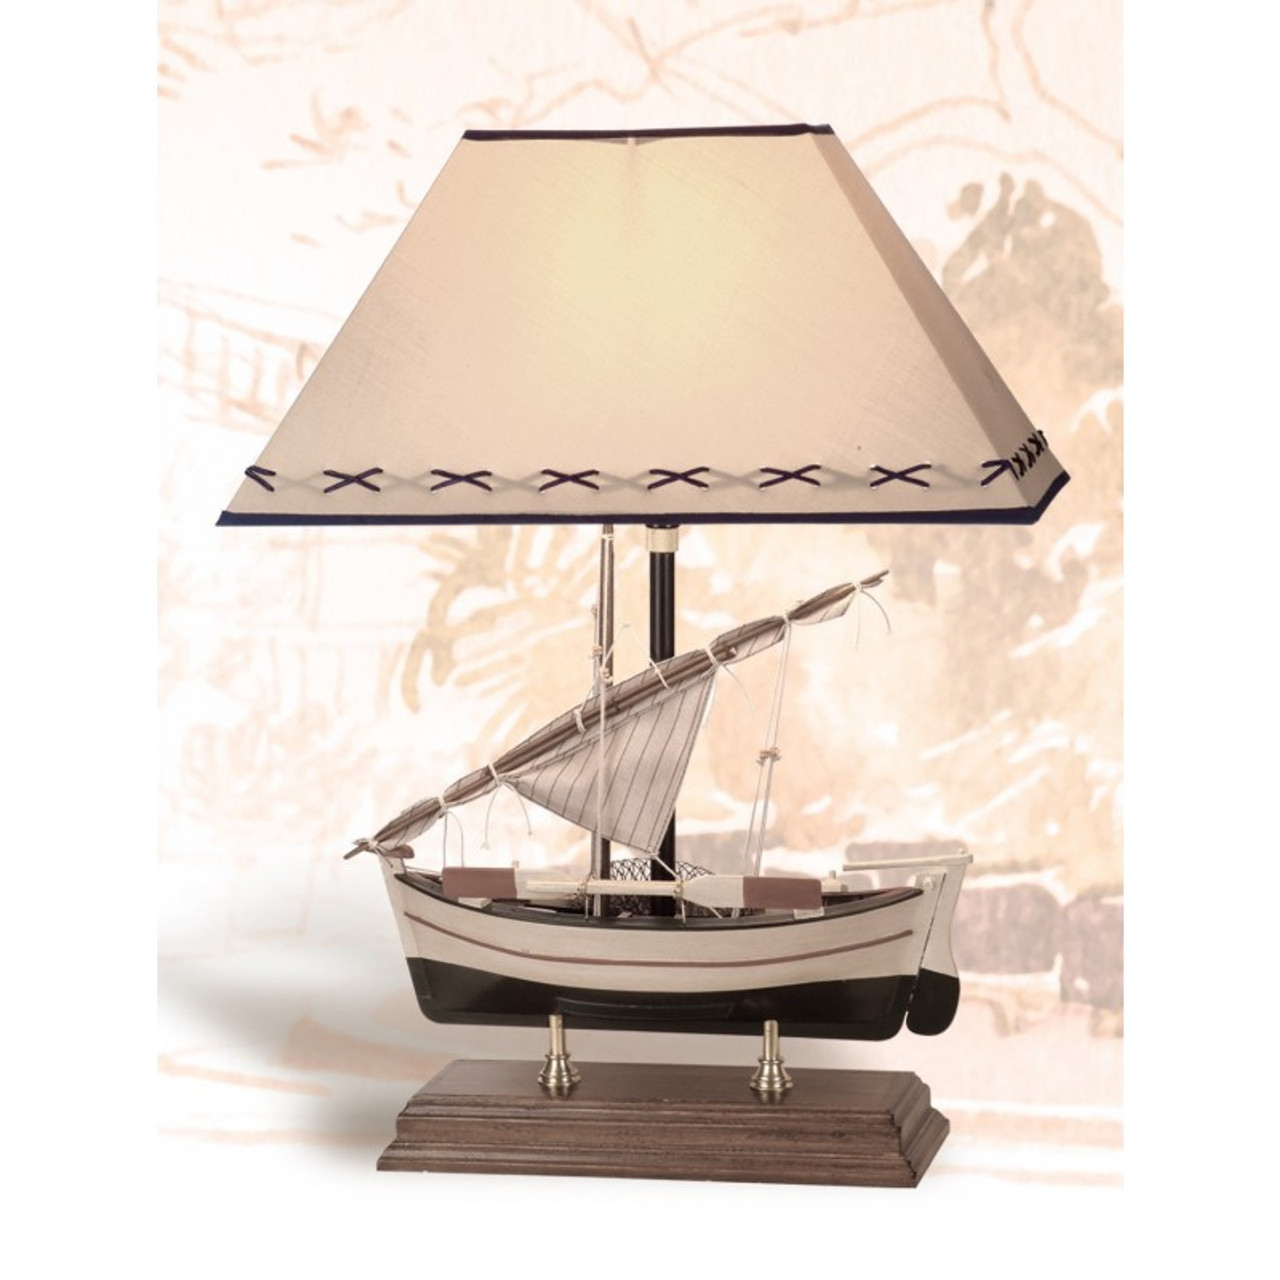 Sailboat Lamp on Stand - 22""